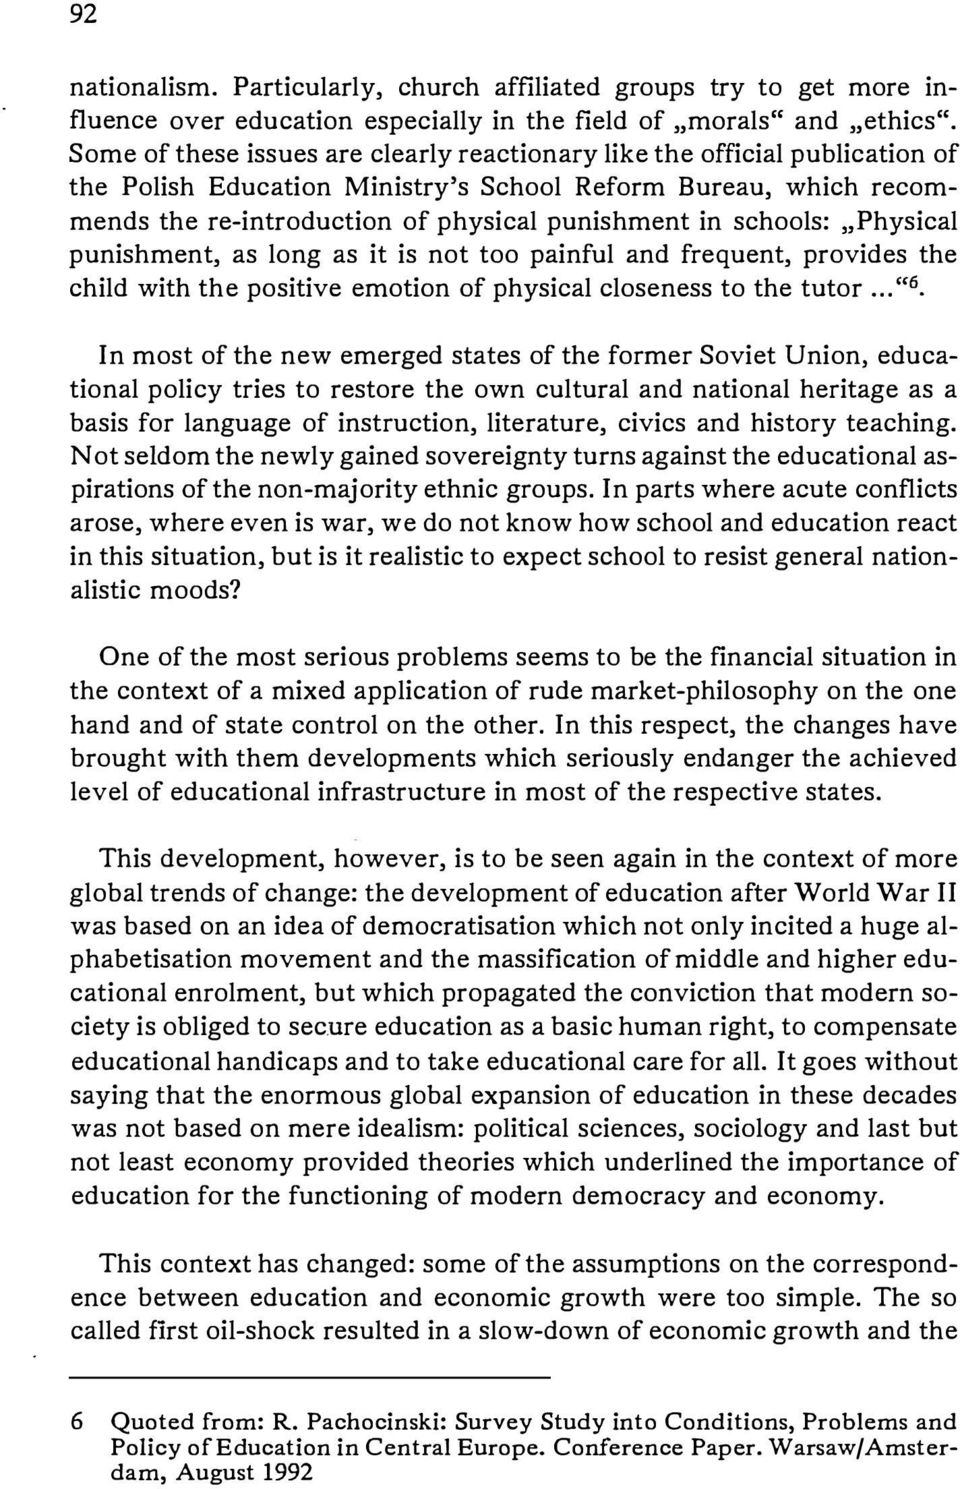 "schools: ""Physical punishment, as long as it is not too painful and frequent, provides the child with the positive emotion of physical closeness to the tutor...""6."